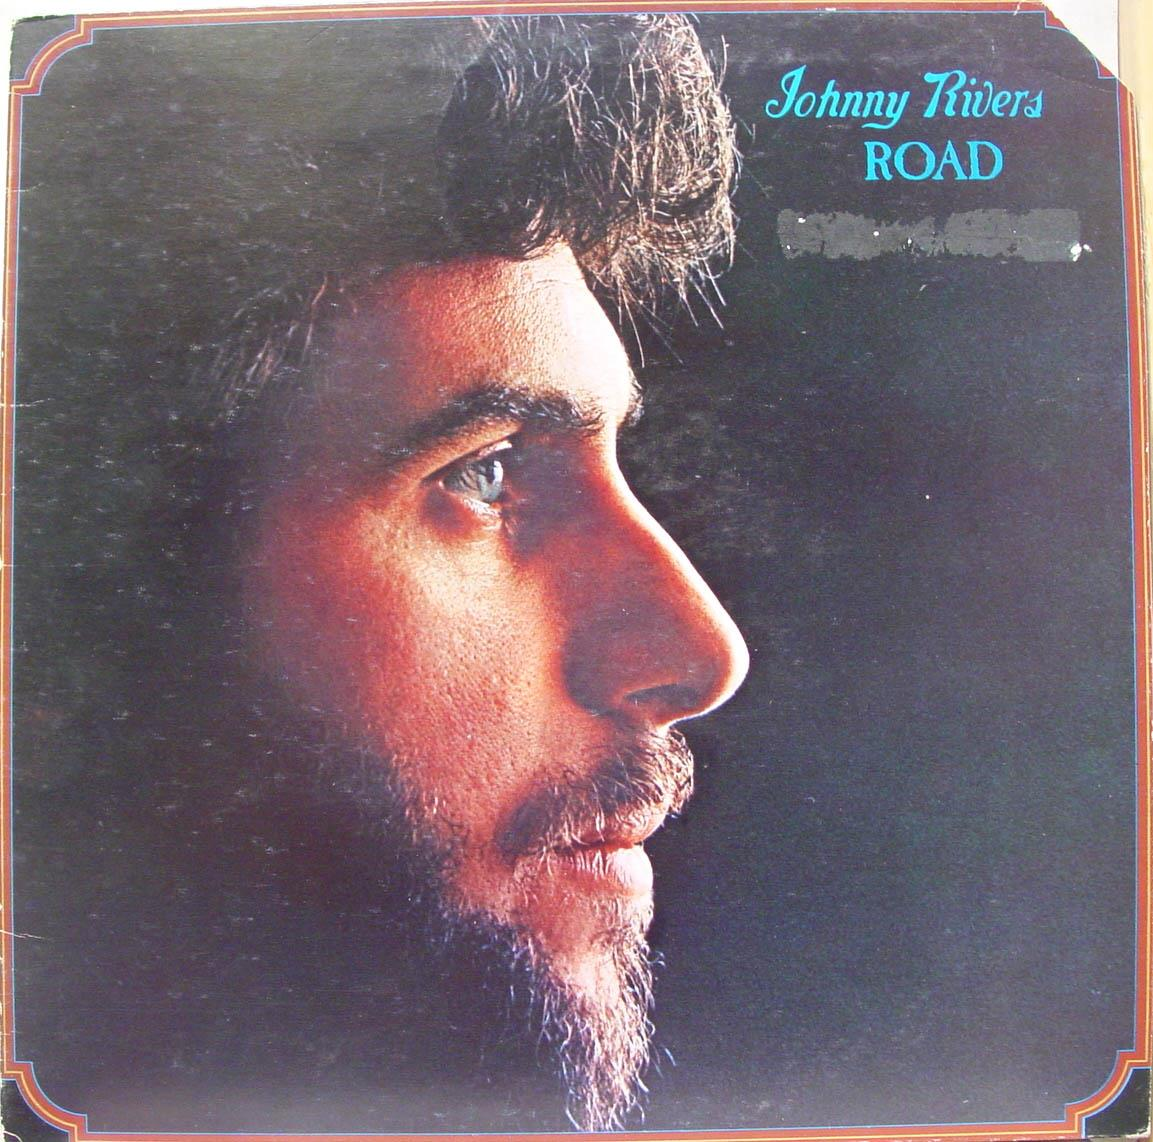 JOHNNY RIVERS - Johnny Rivers Road Lp Vg+ K 50063 Vinyl 1974 Record (road)